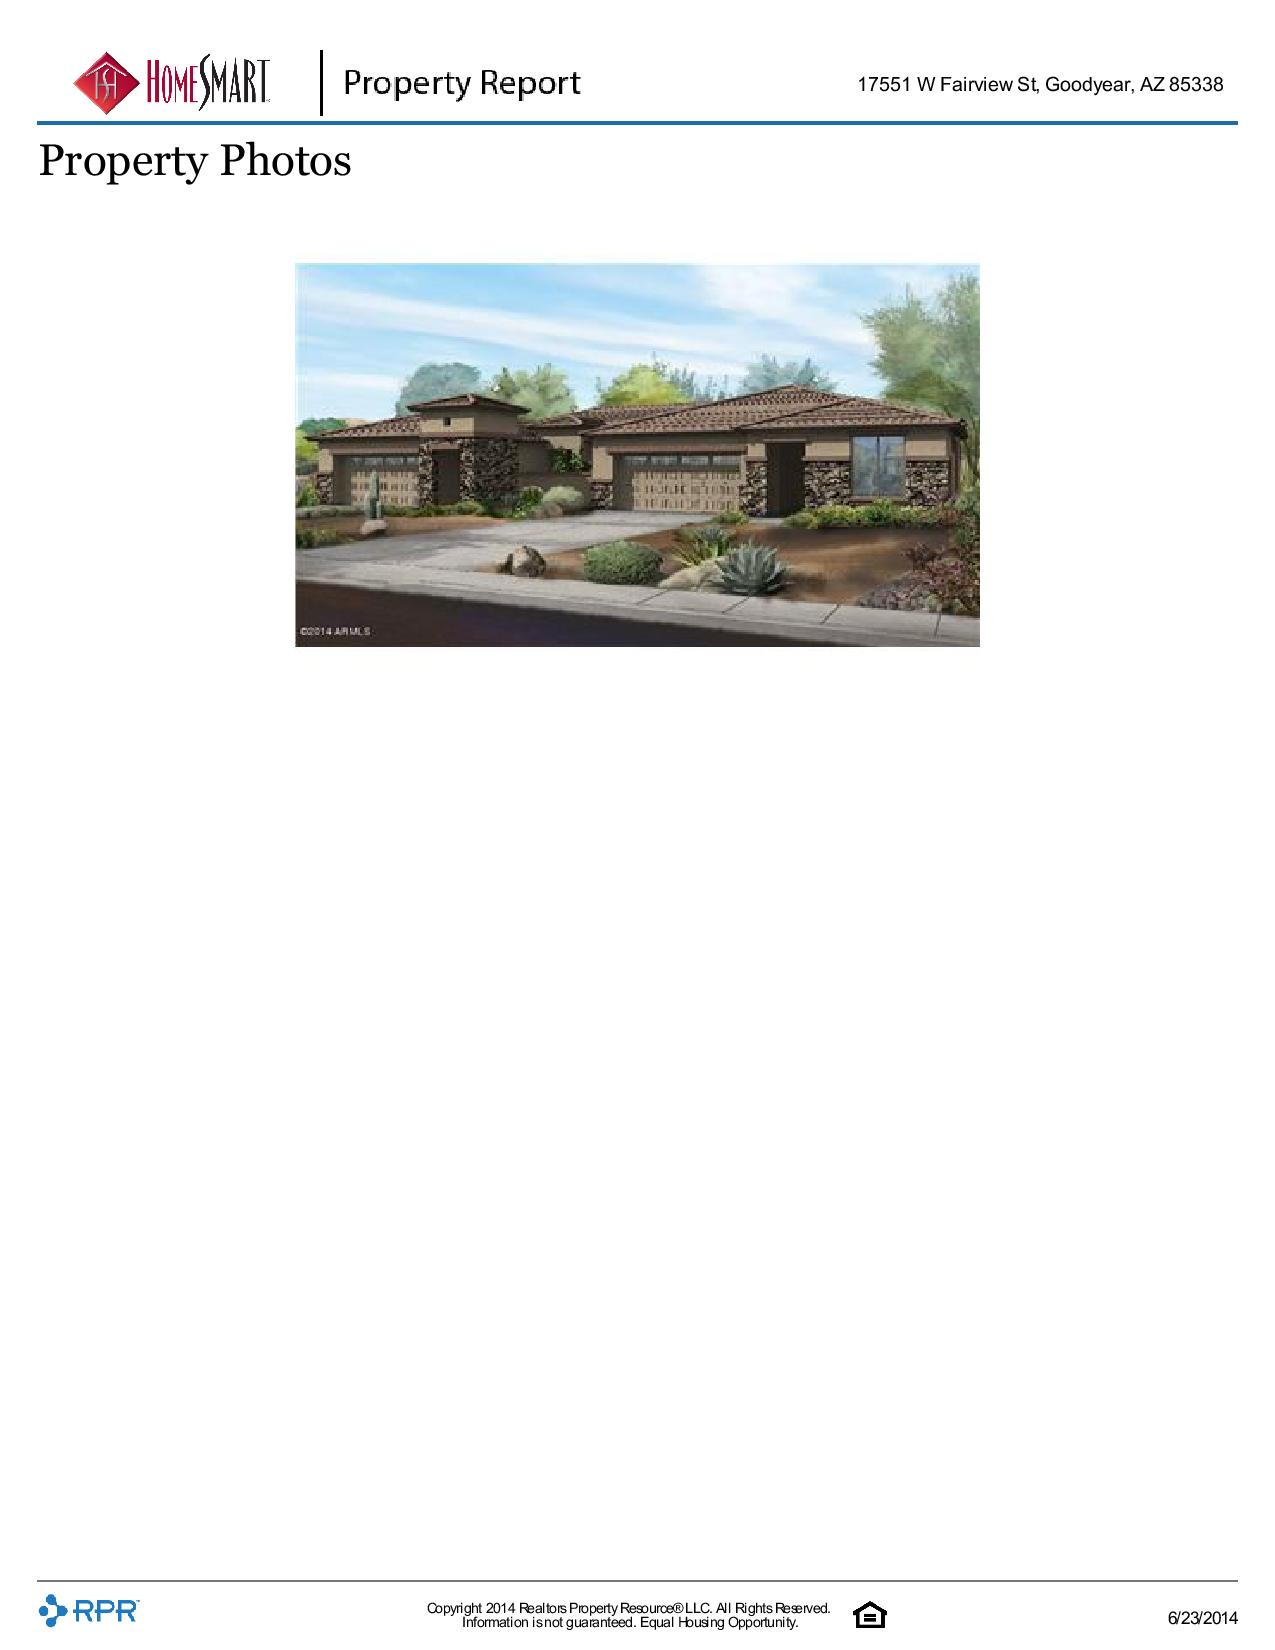 17551-W-Fairview-St-Goodyear-AZ-85338-page-005